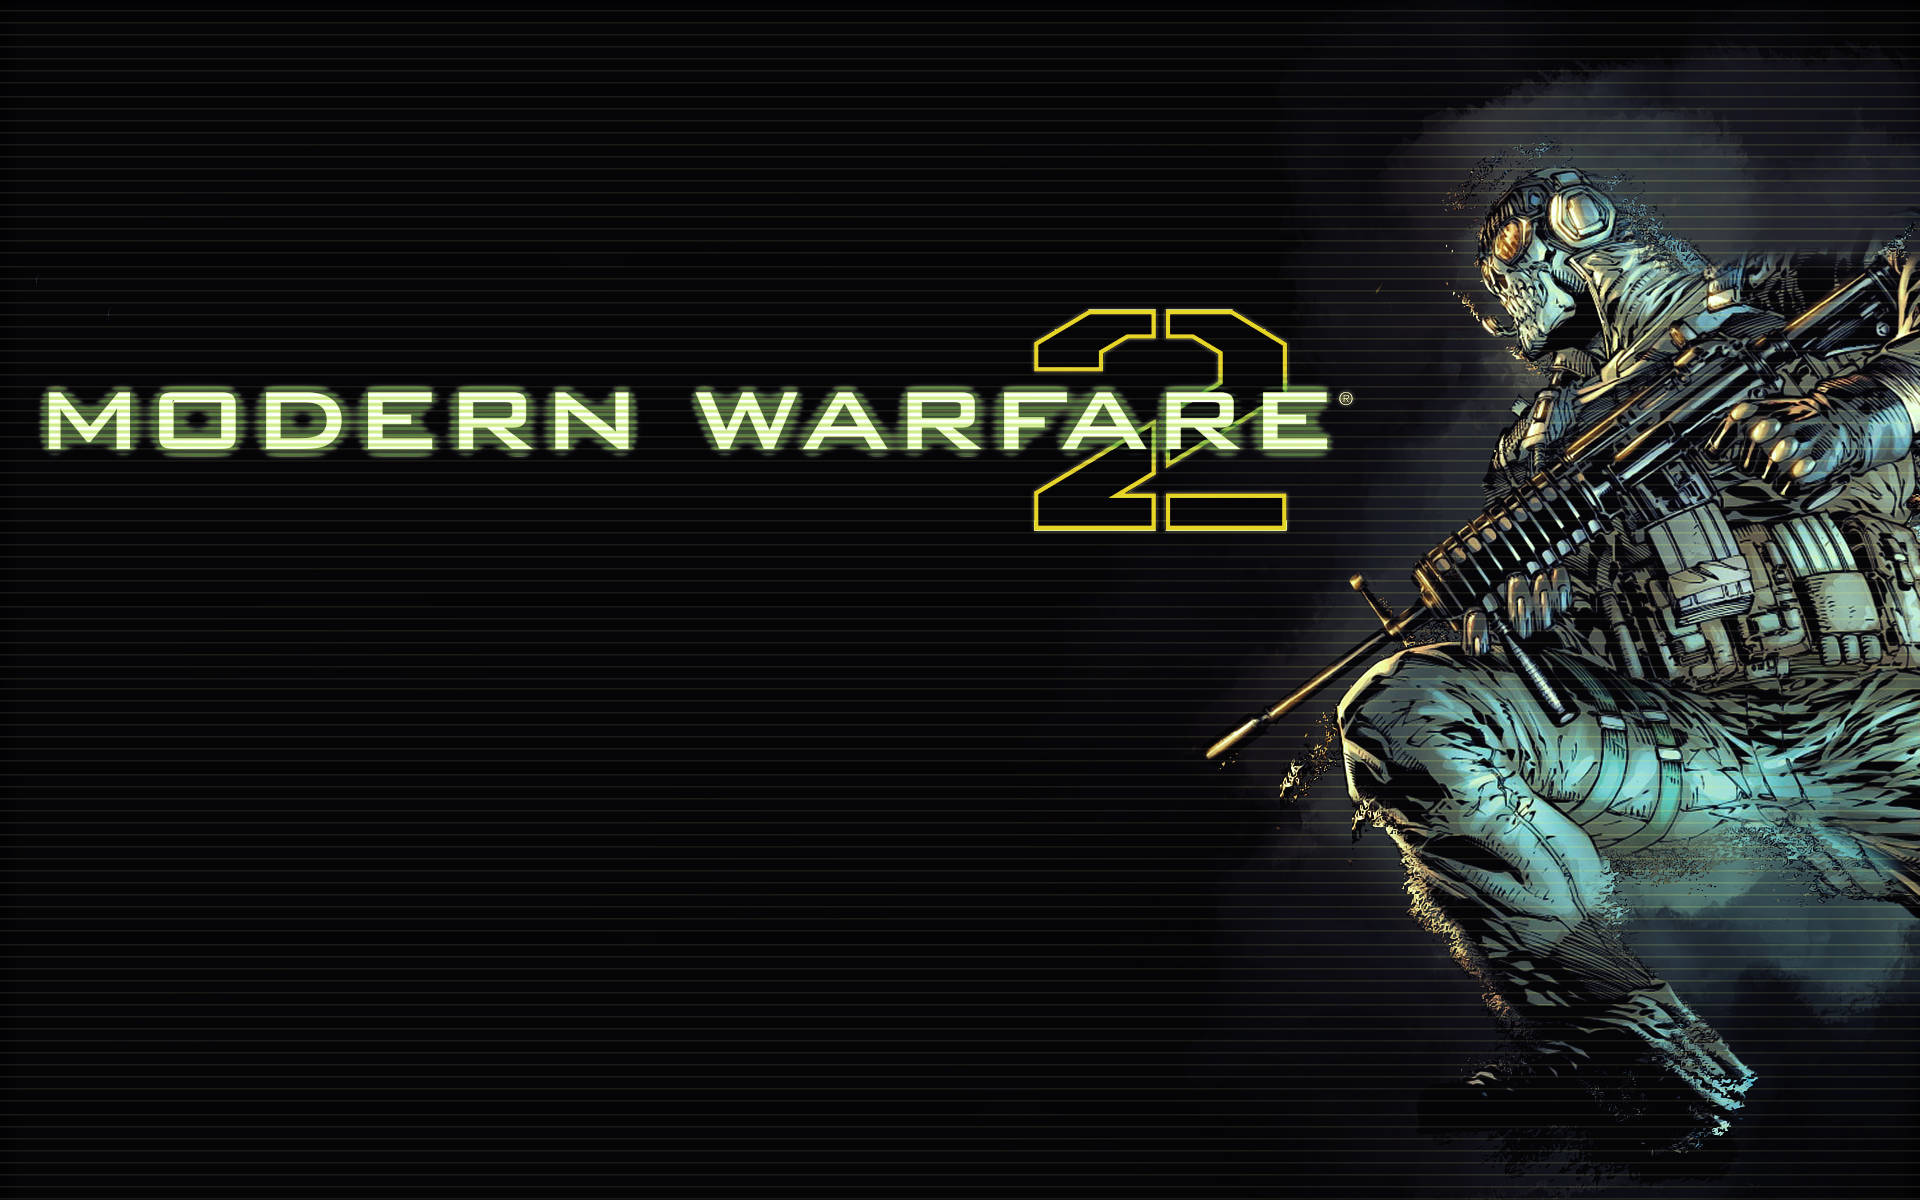 Call Of Duty Modern Warfare 2 Hd Wallpaper Background Image